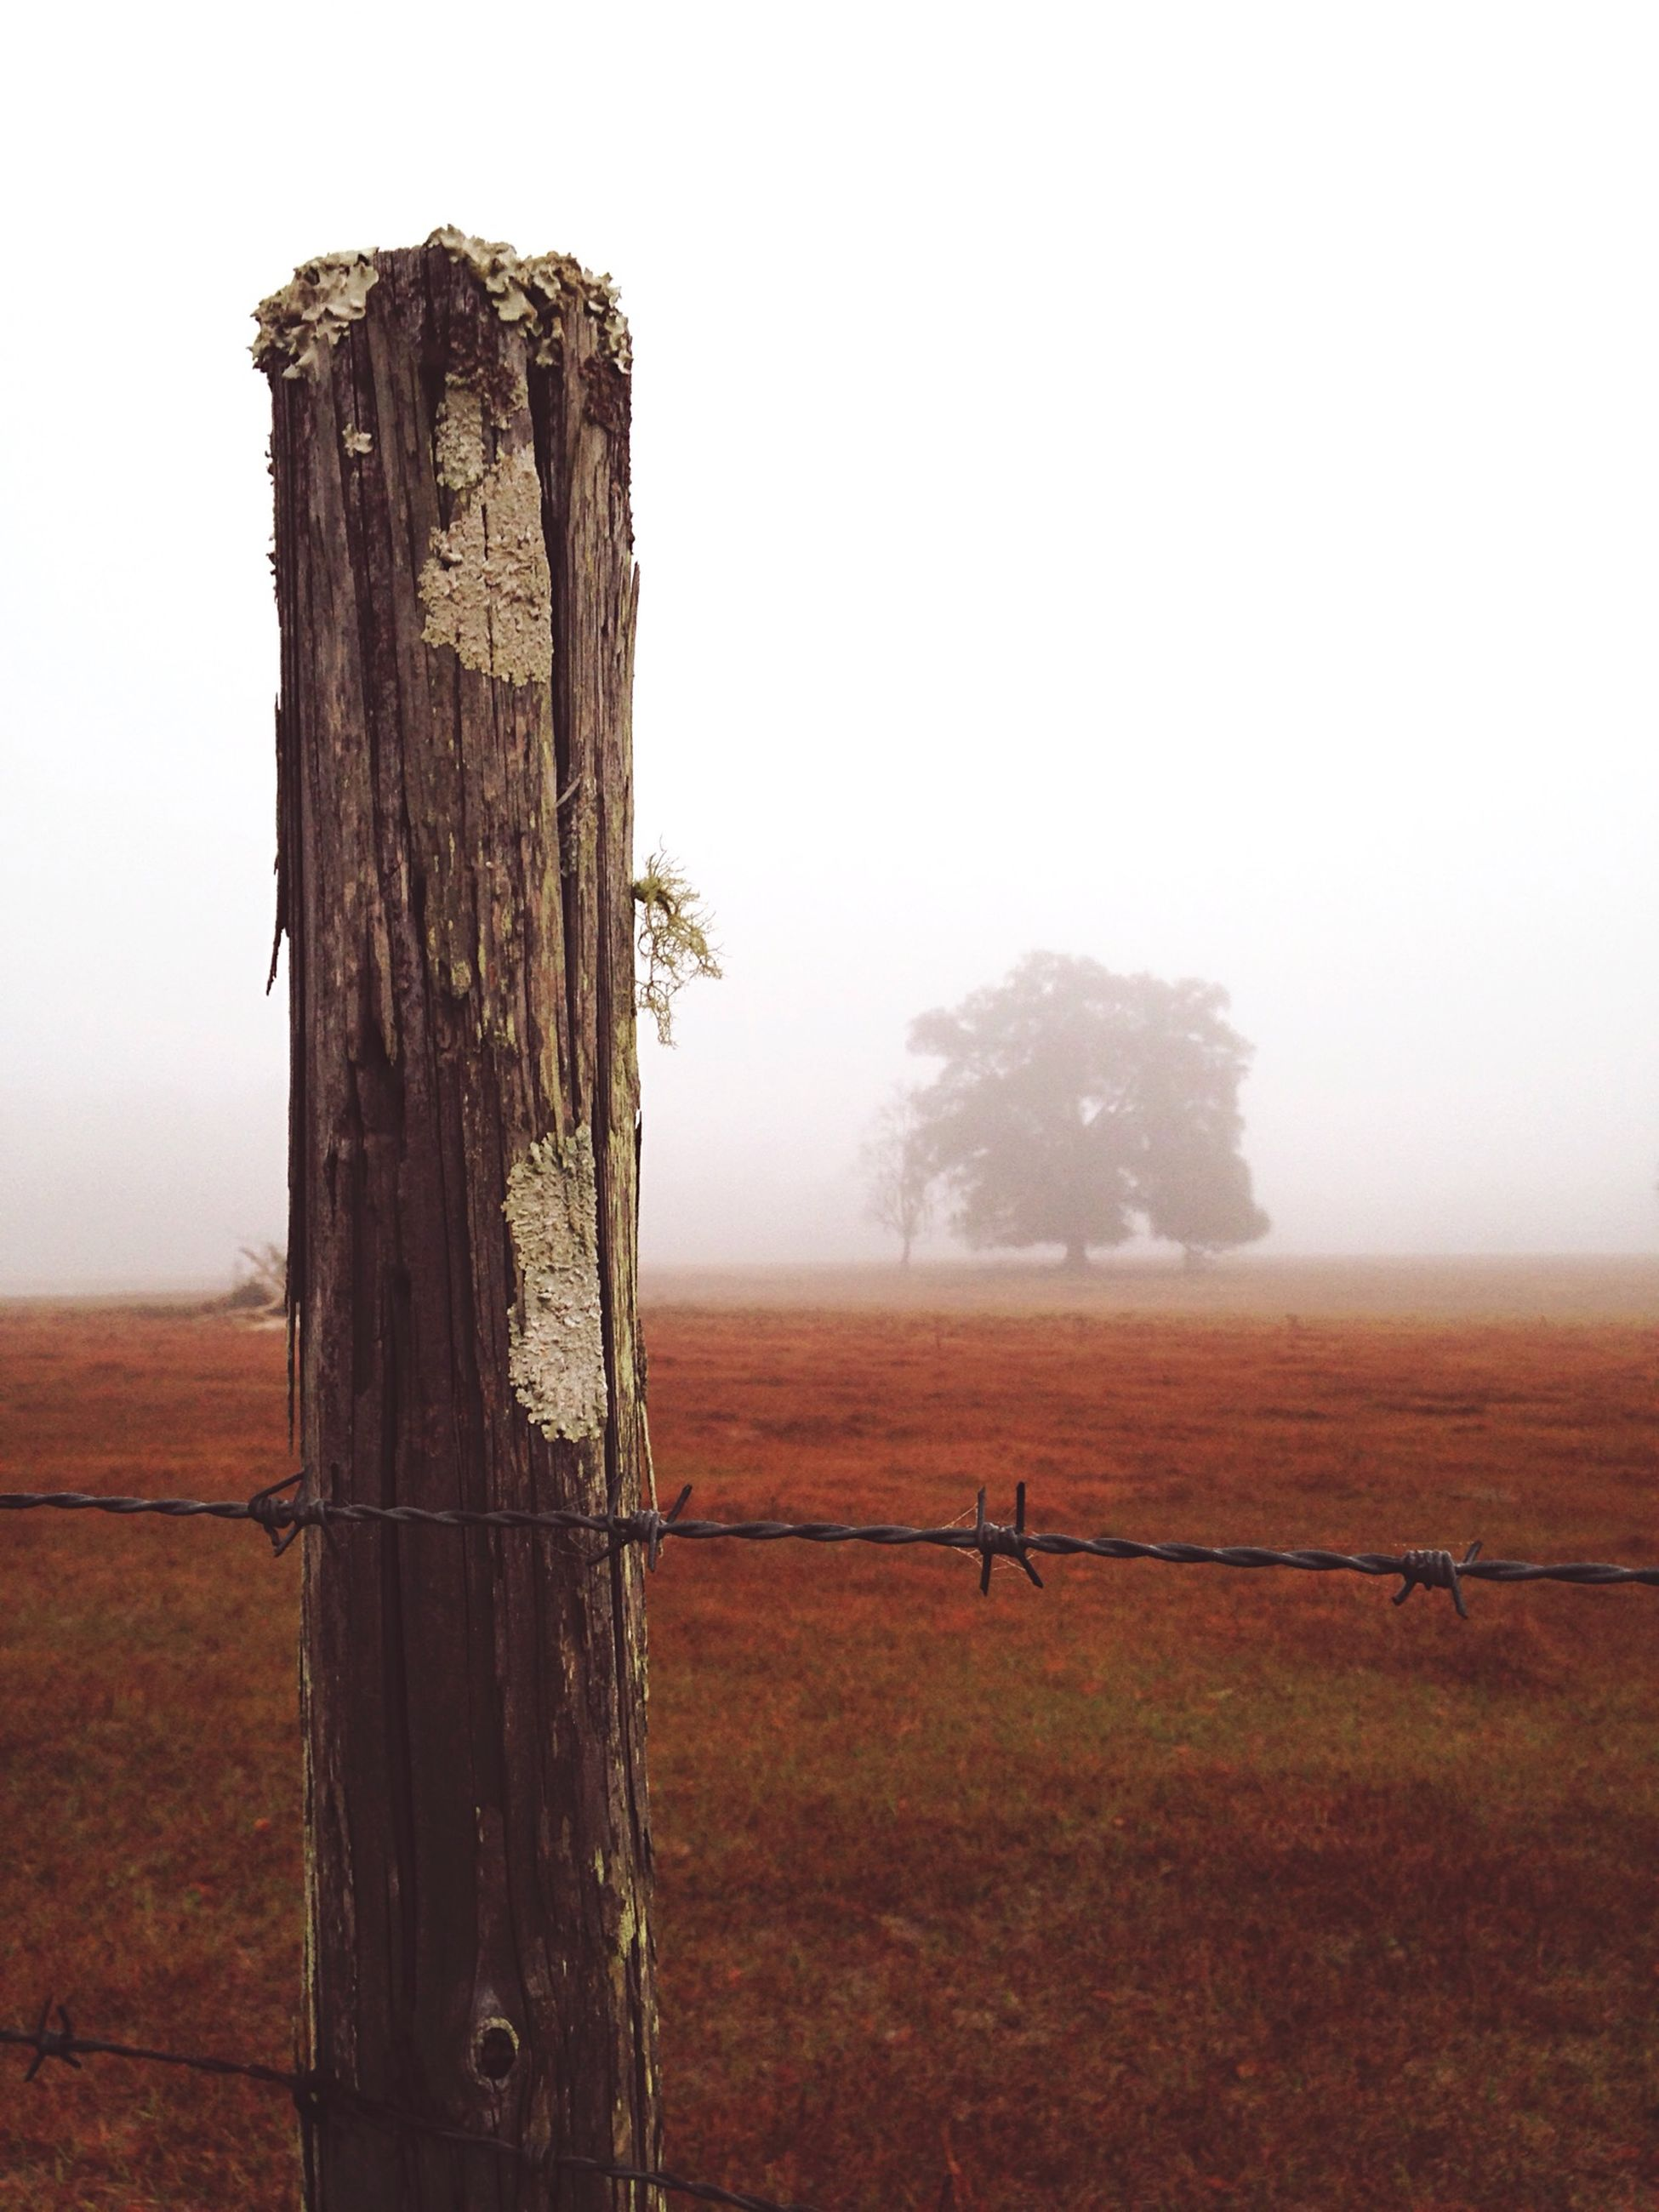 landscape, clear sky, tranquil scene, tranquility, field, nature, scenics, wooden post, wood - material, fence, tree trunk, copy space, beauty in nature, non-urban scene, remote, grass, sky, horizon over land, tree, no people